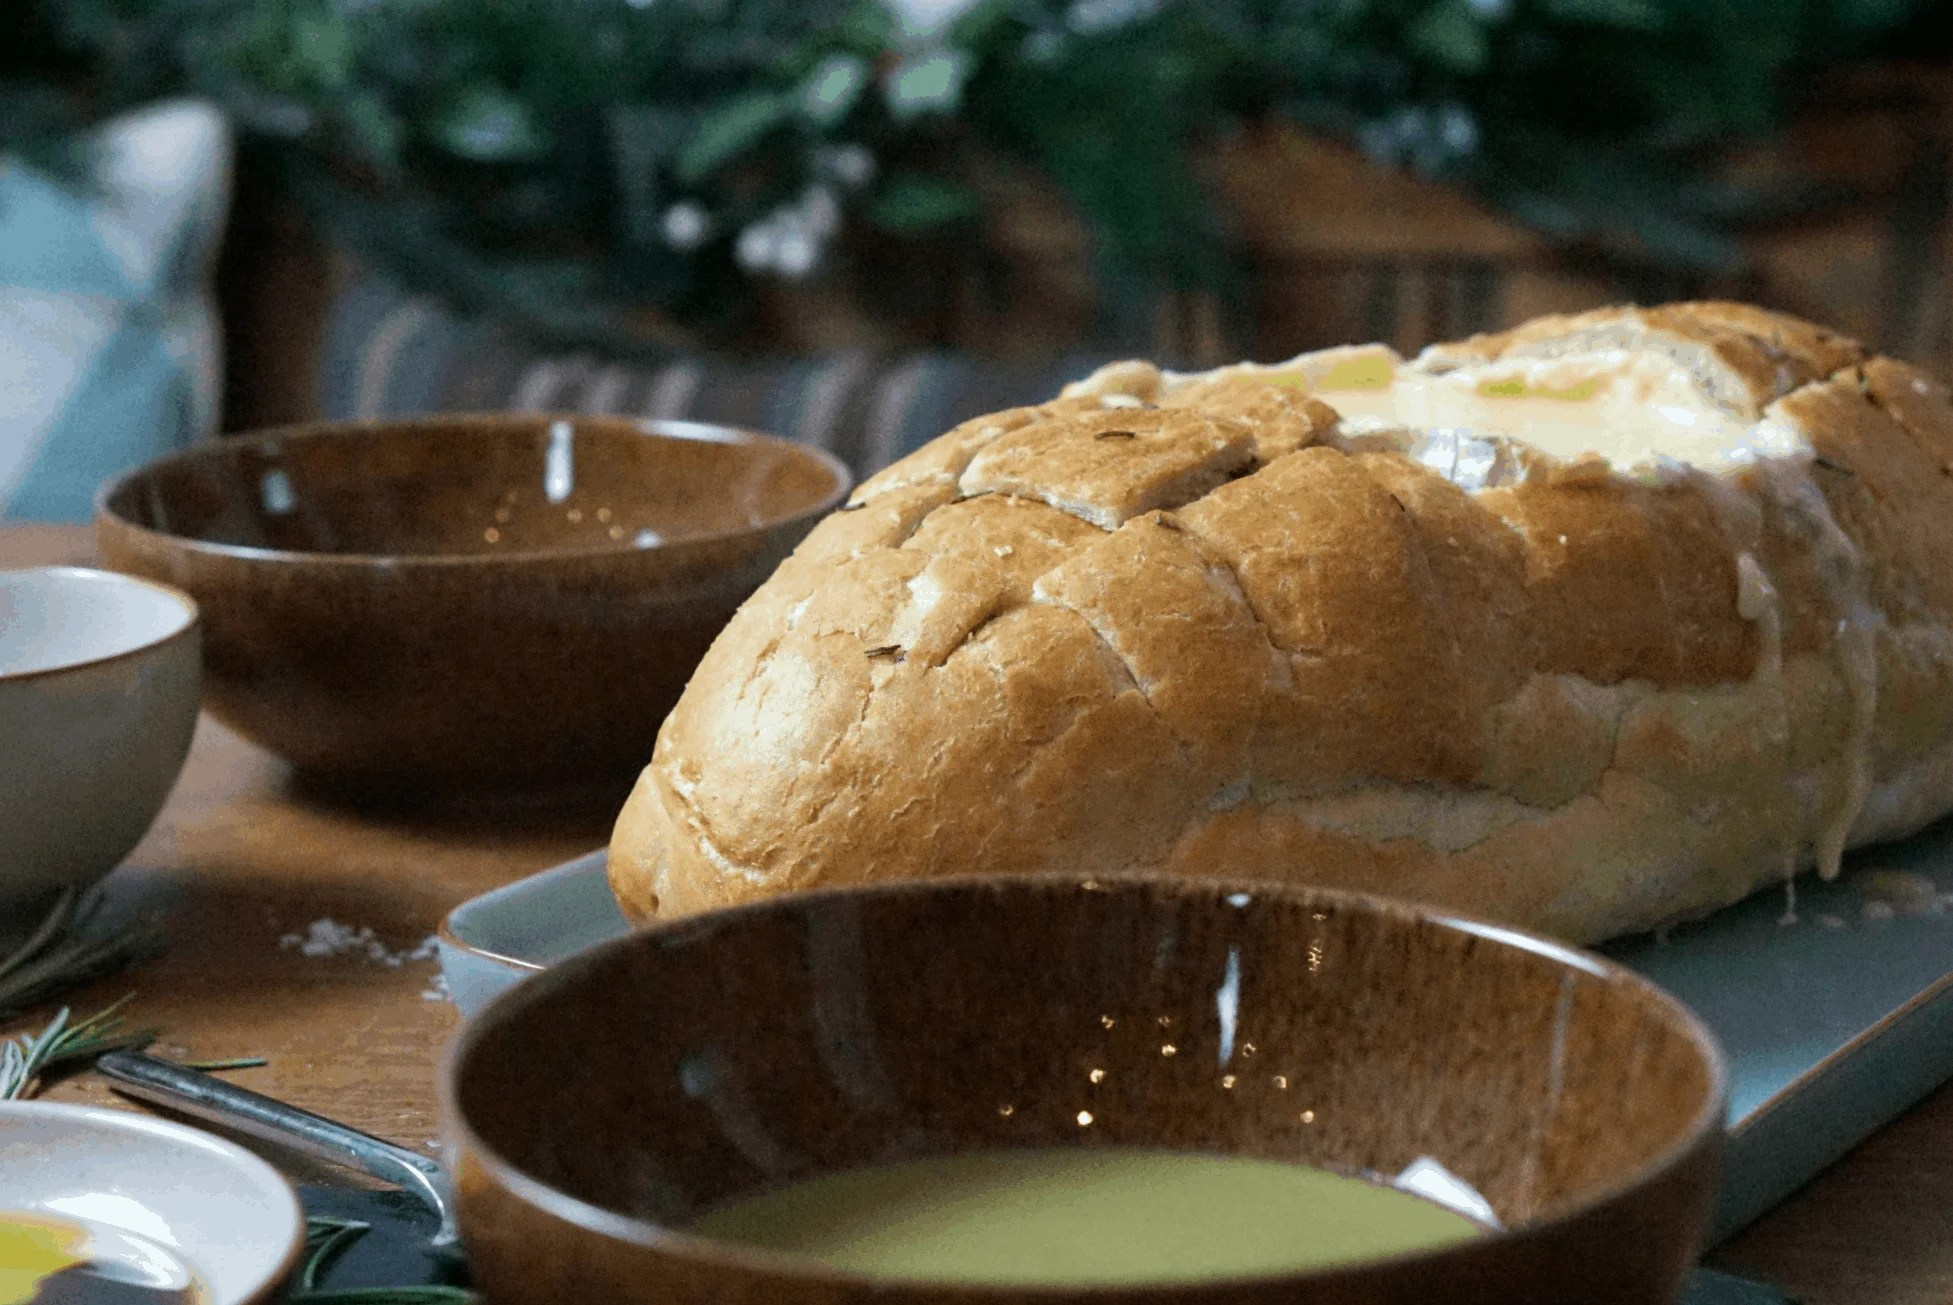 Baked Camembert And Tiger Bread